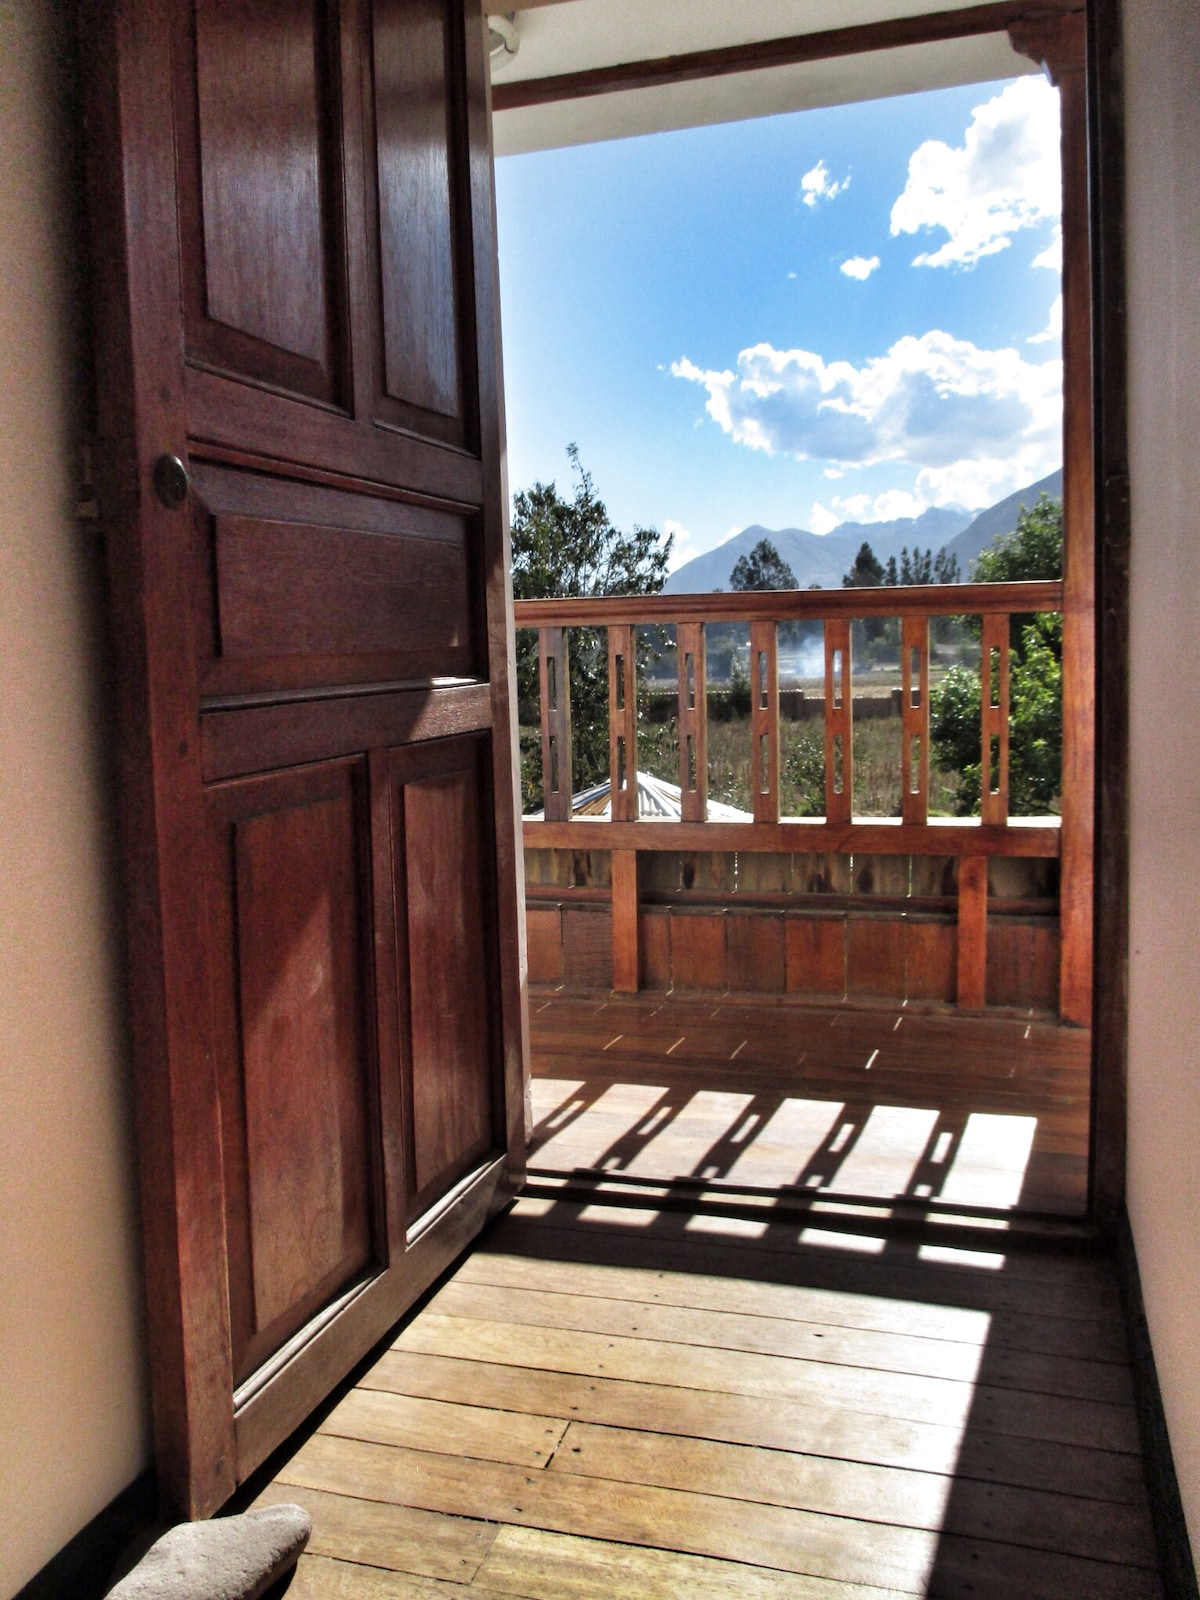 Sunny Balcony with an epic view of the mountains